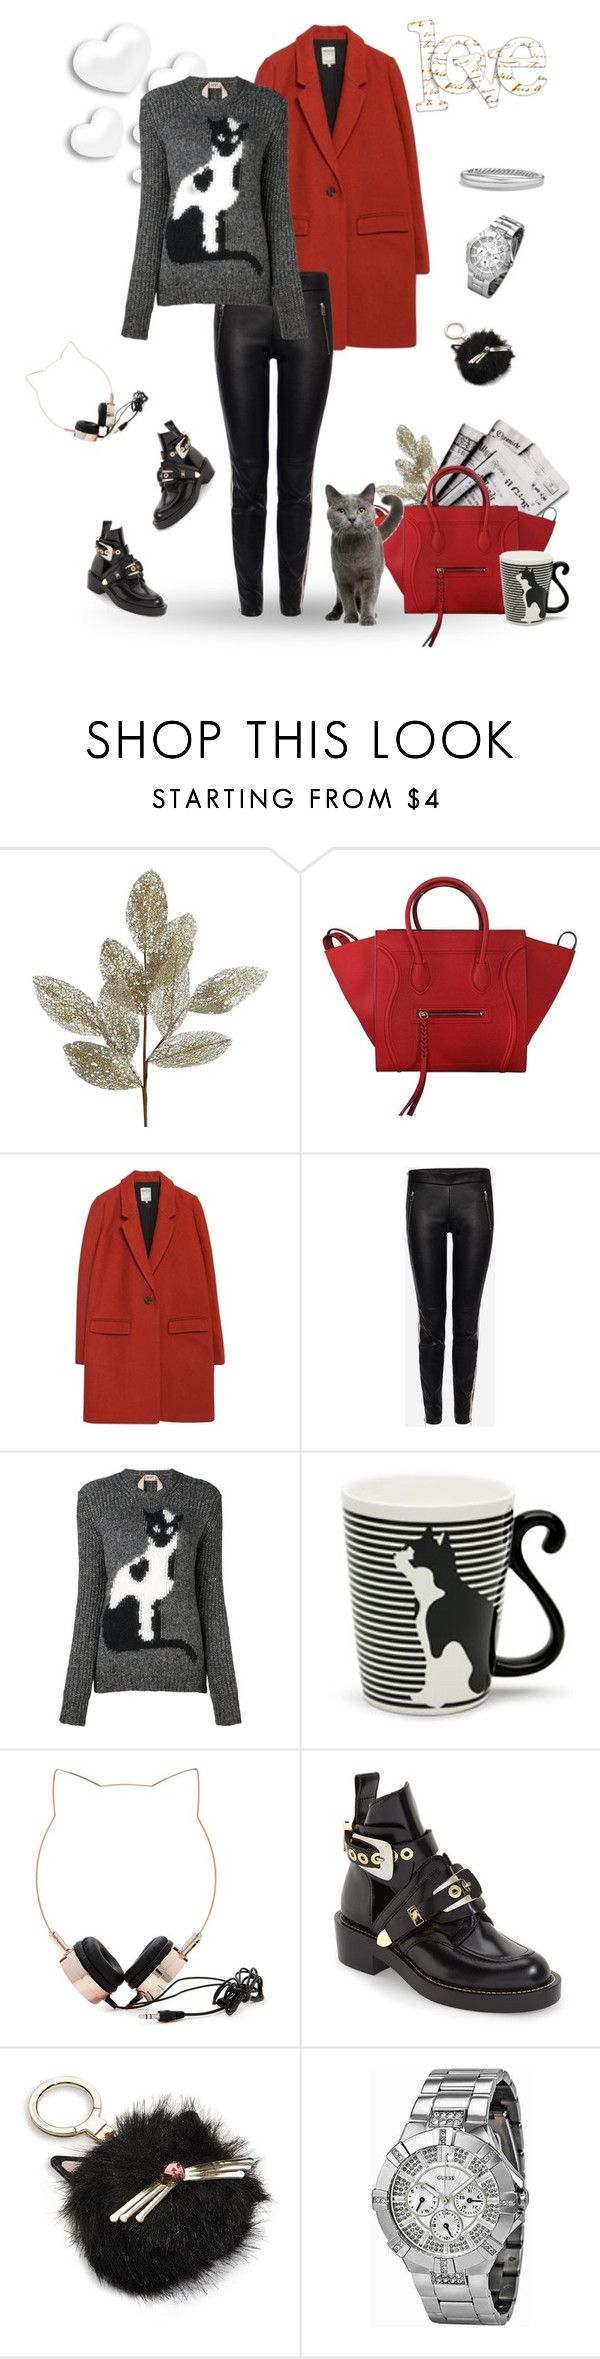 """""""Cat"""" by murenochek ❤ liked on Polyvore featuring Pier 1 Imports, 7 For All Mankind, CÉLINE, Zara, Alexander McQueen, N°21, Miya Company, Forever 21, Balenciaga and Kate Spade"""